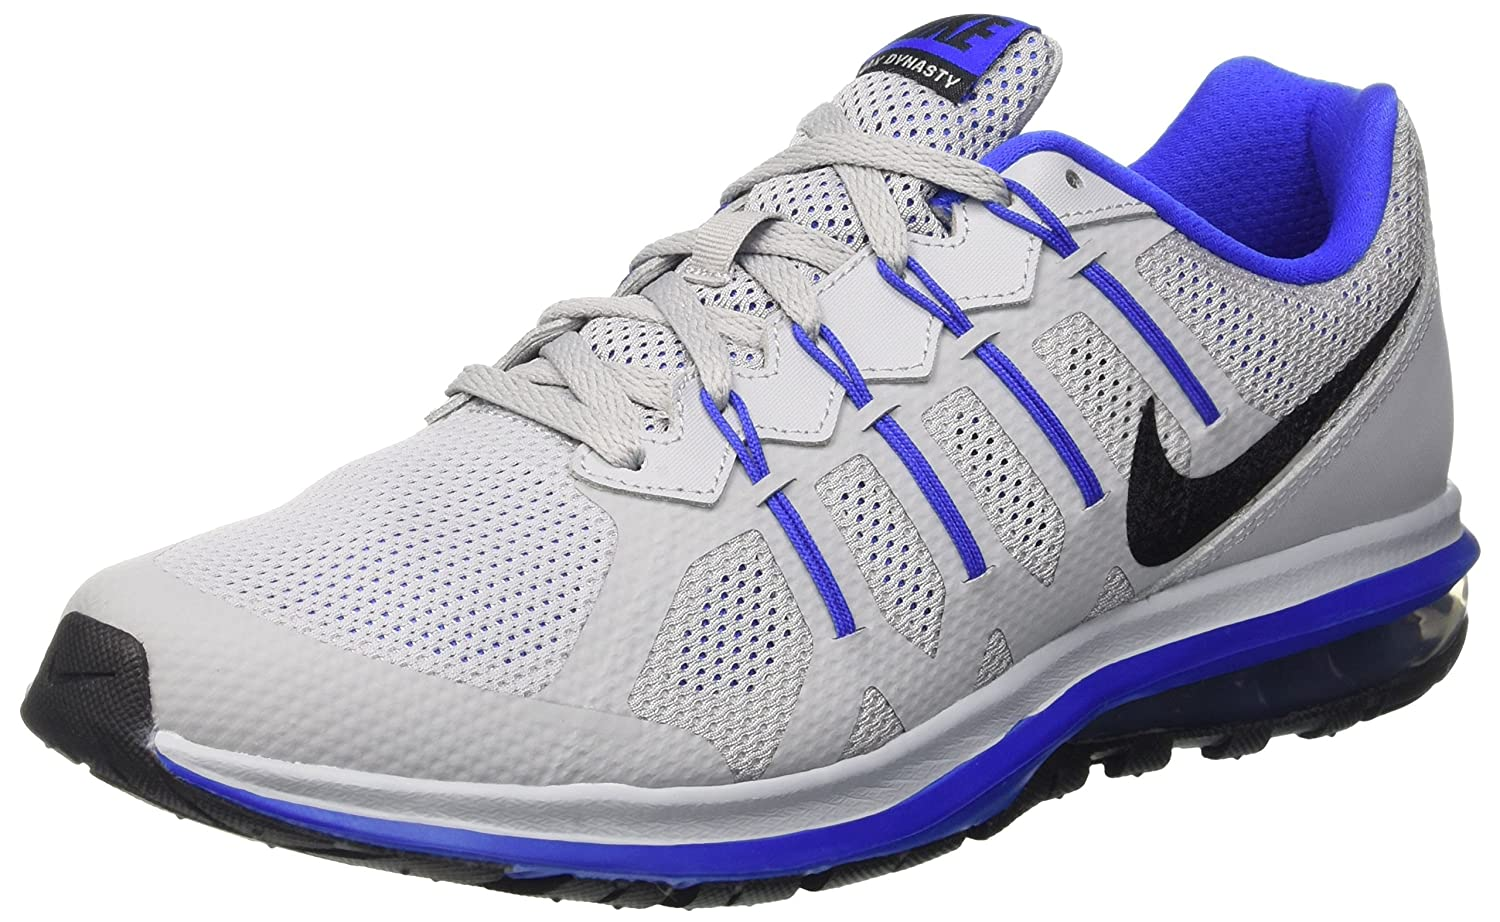 new arrival 5c37a 4c9be Amazon.com   Nike Men s Air Max Dynasty Running Shoe   Running